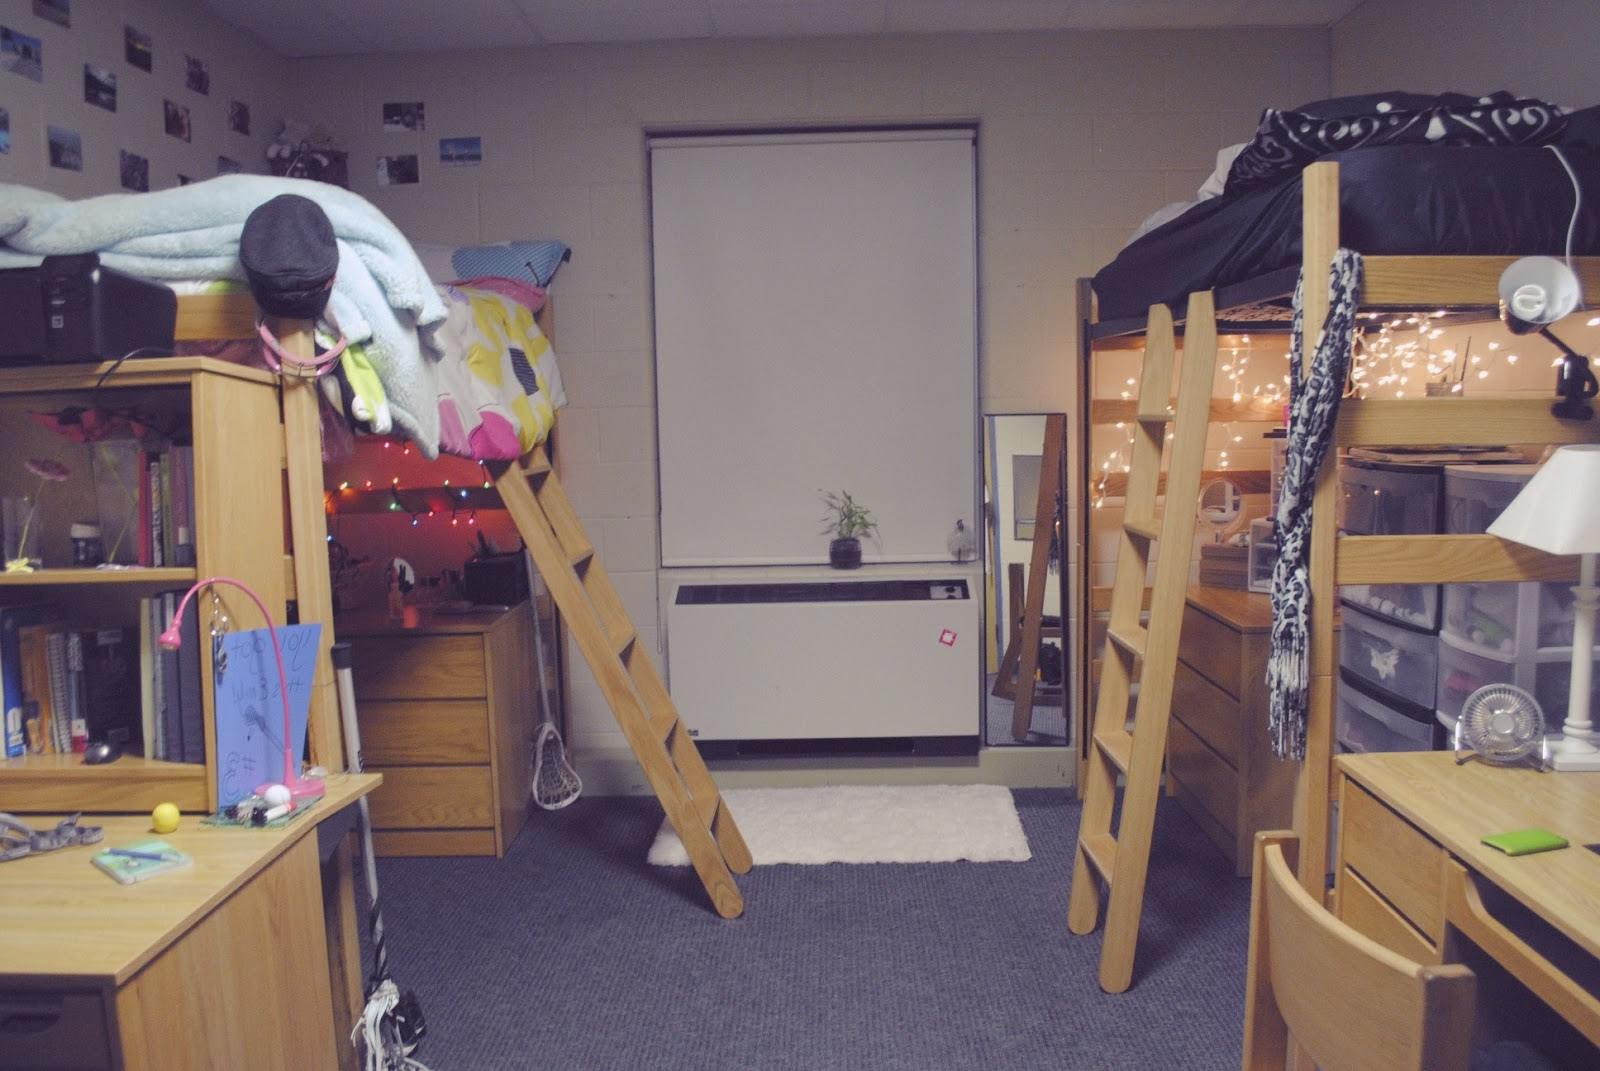 Dorm room loft bed ideas for Dorm bathroom ideas